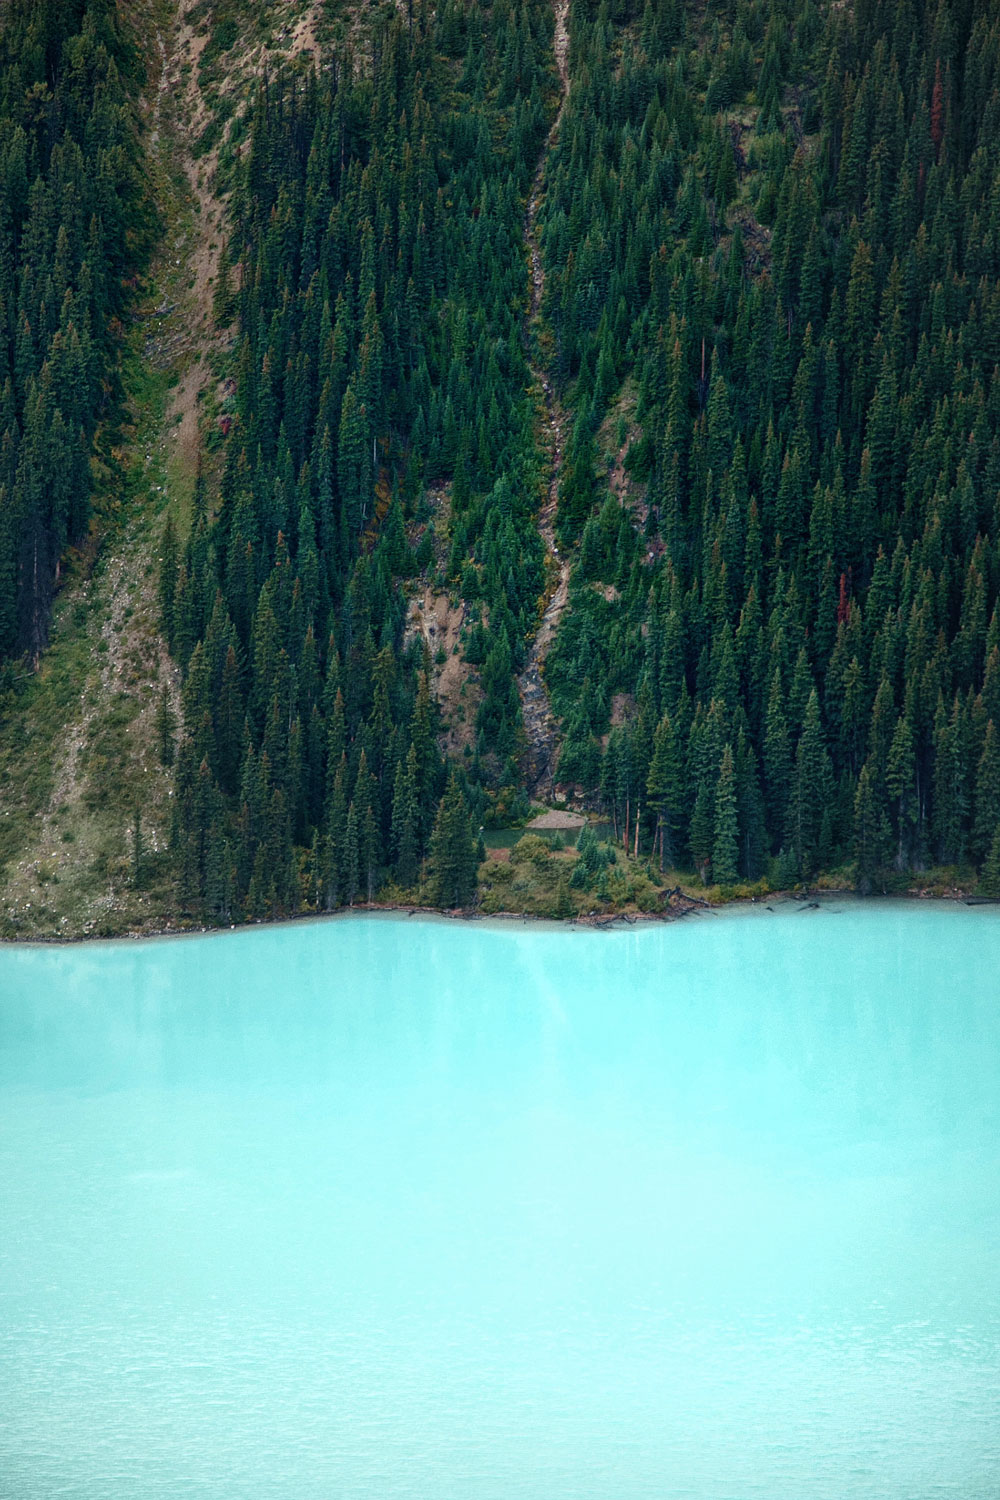 How to get to Peyto Lake in Canada